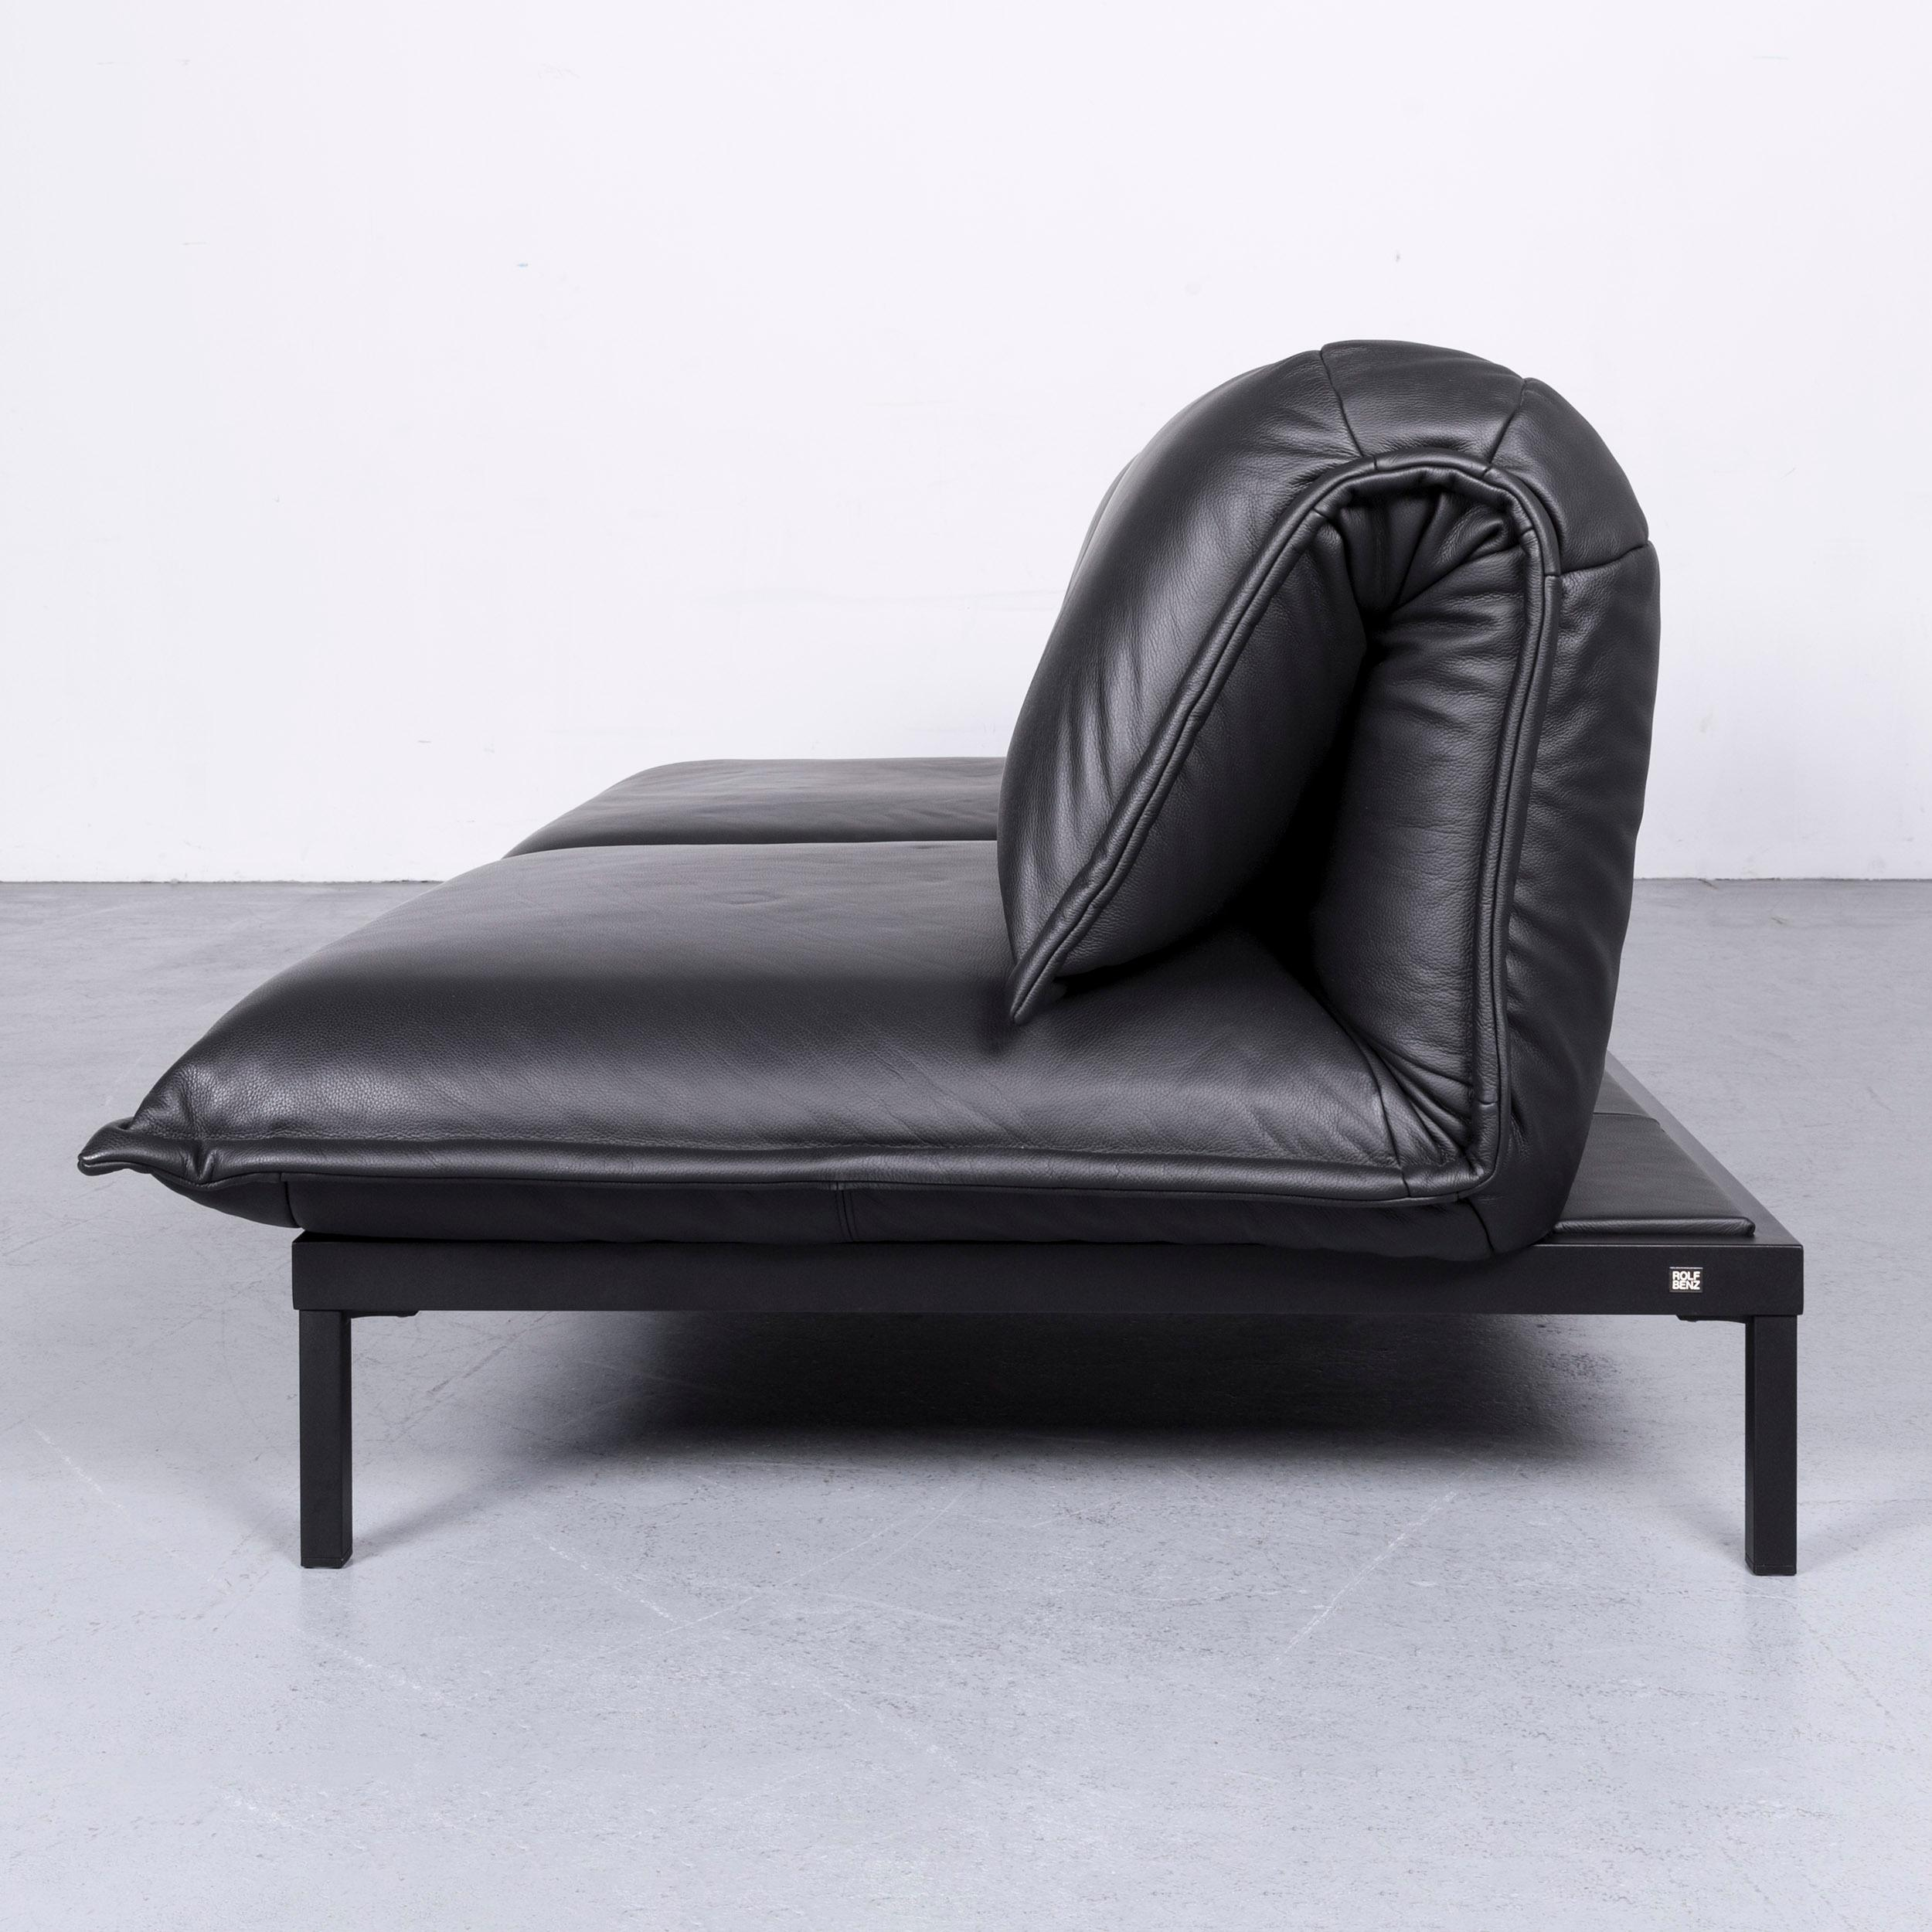 Rolf Benz Nova Rolf Benz Nova Designer Leather Sofa Black Two Seat Couch With Function